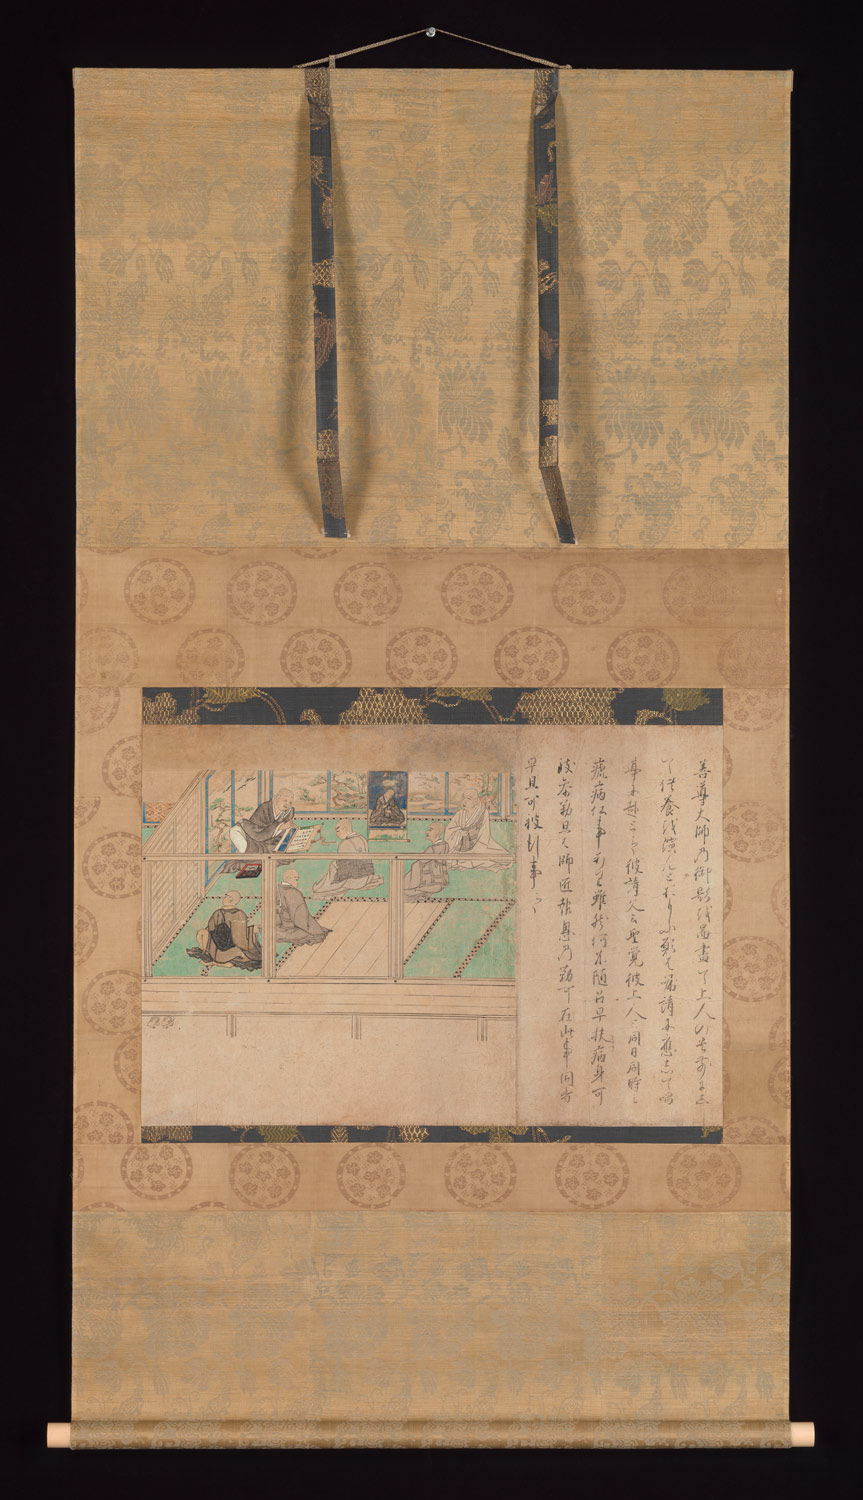 Illustrated Biography of Hōnen (Shūikotokūden-e)